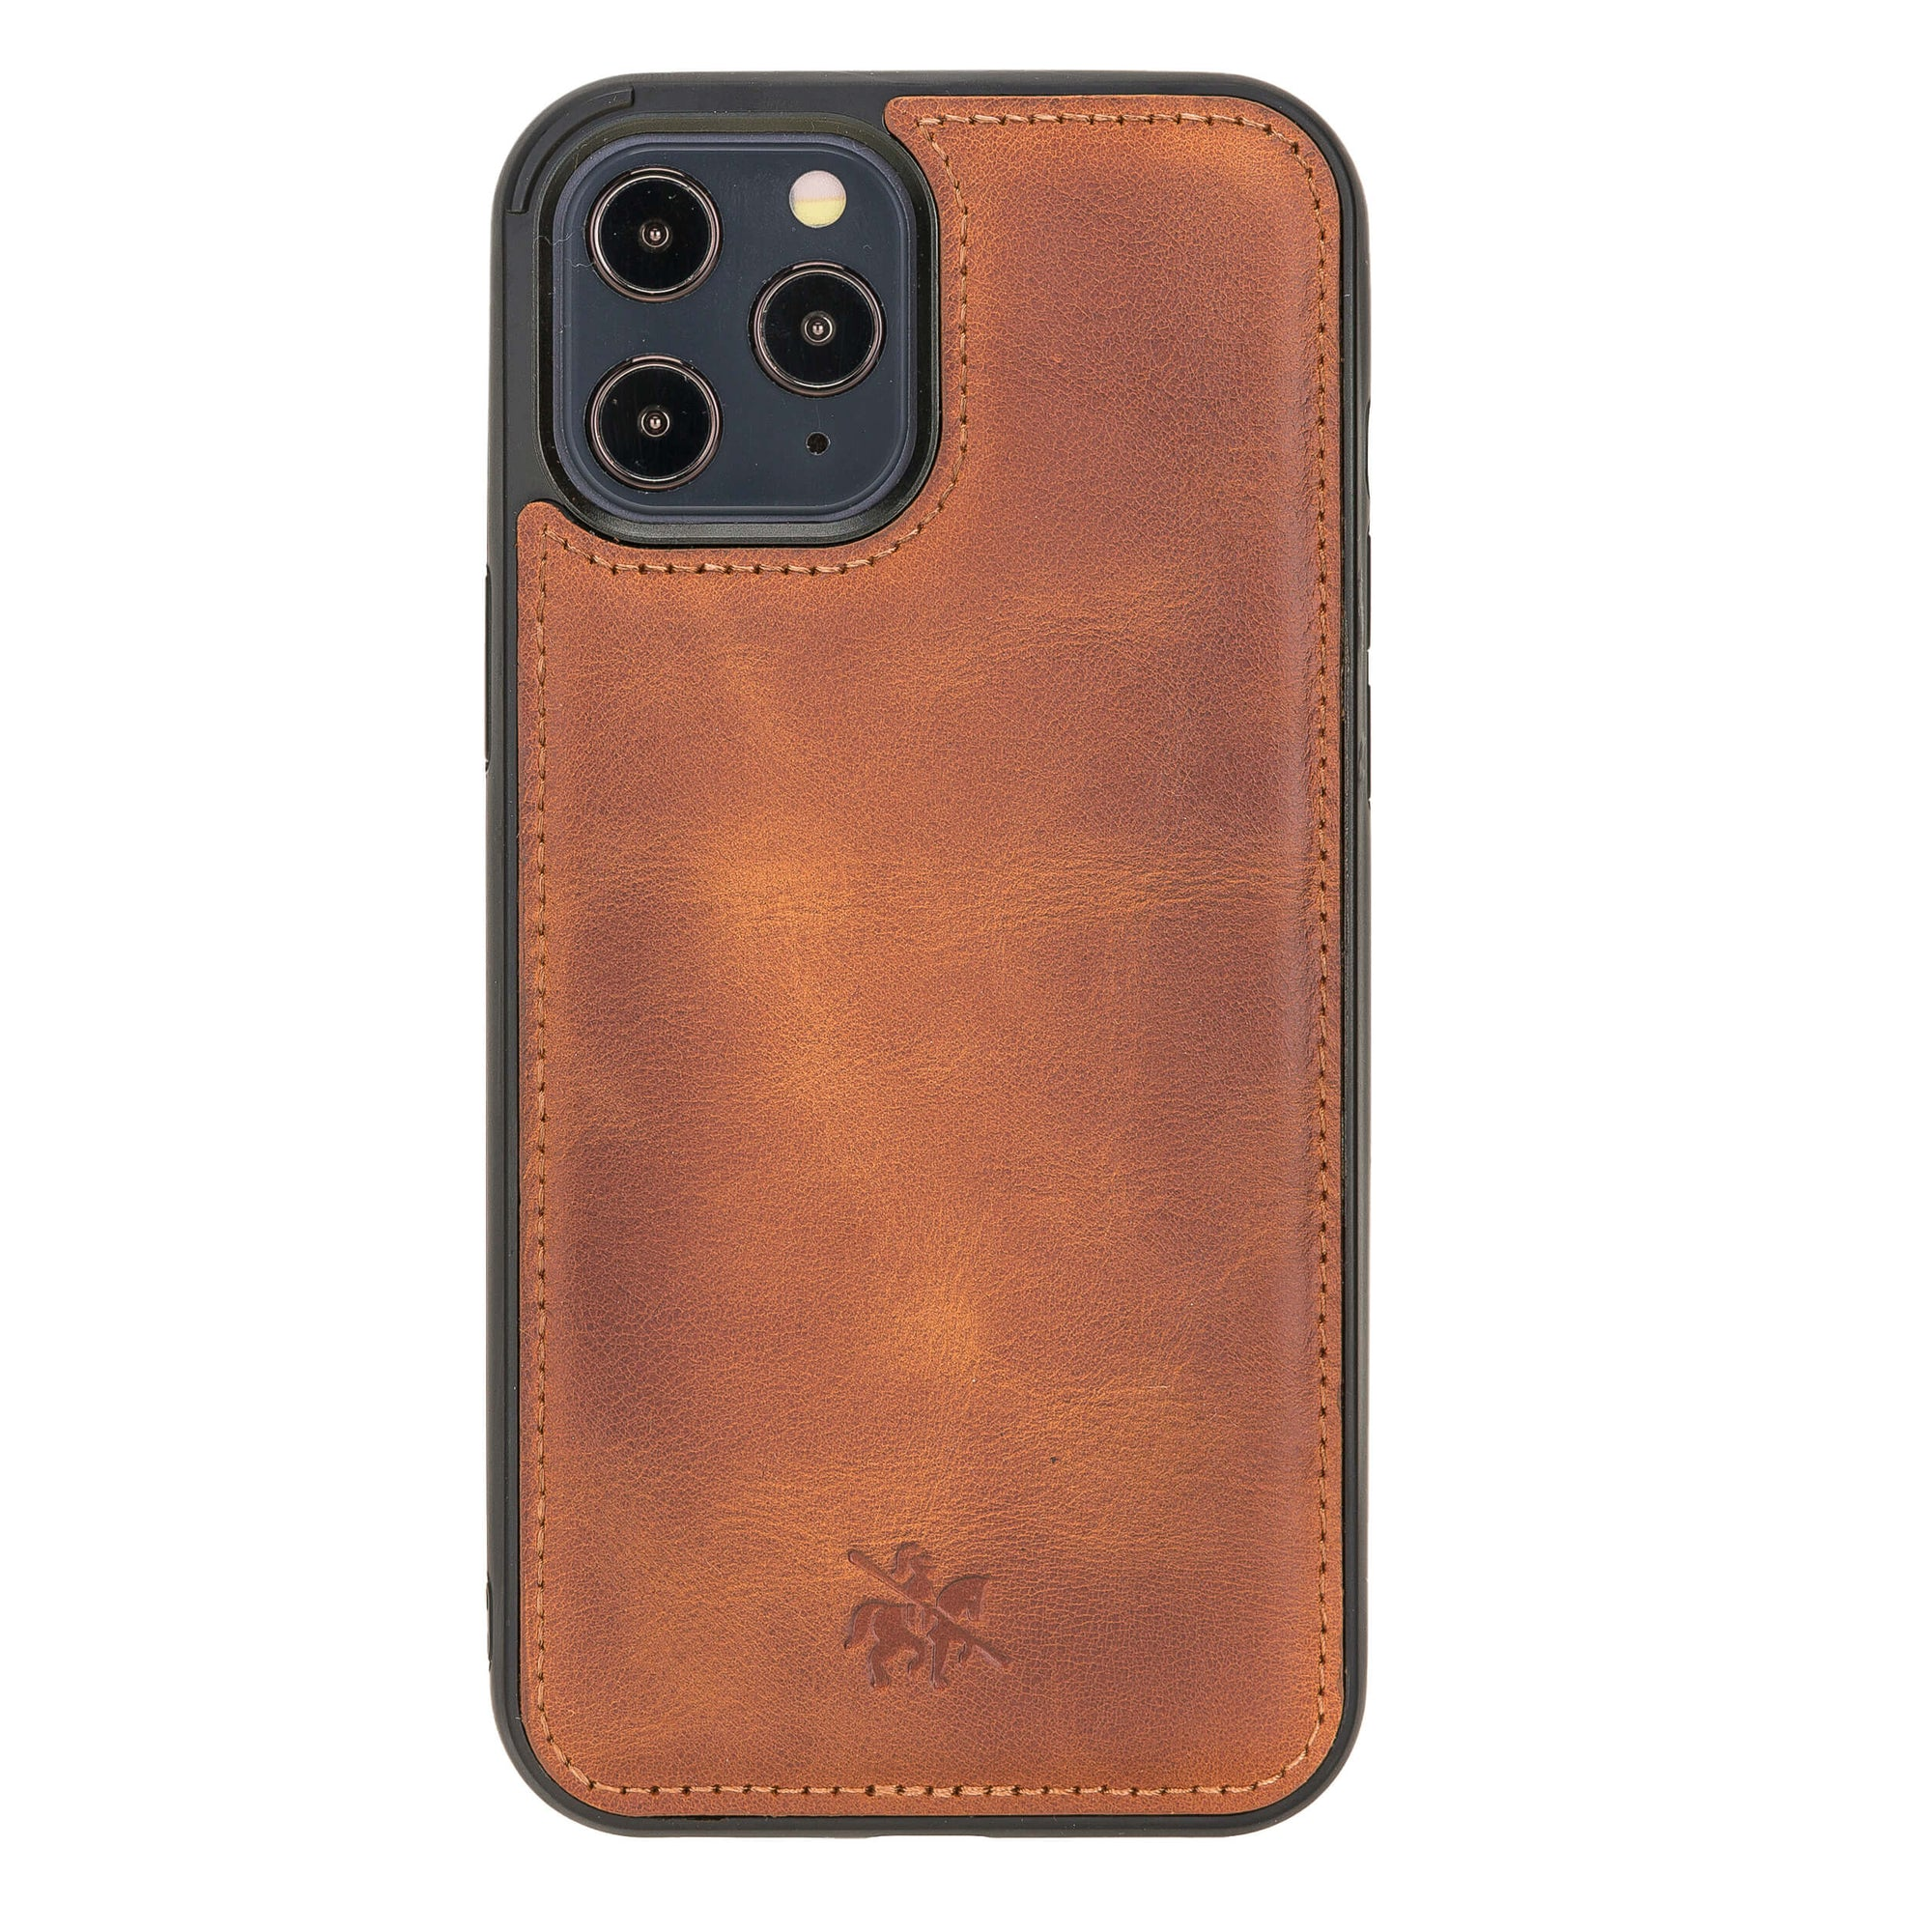 Lucca Snap On Leather Case for iPhone 12 Pro Max